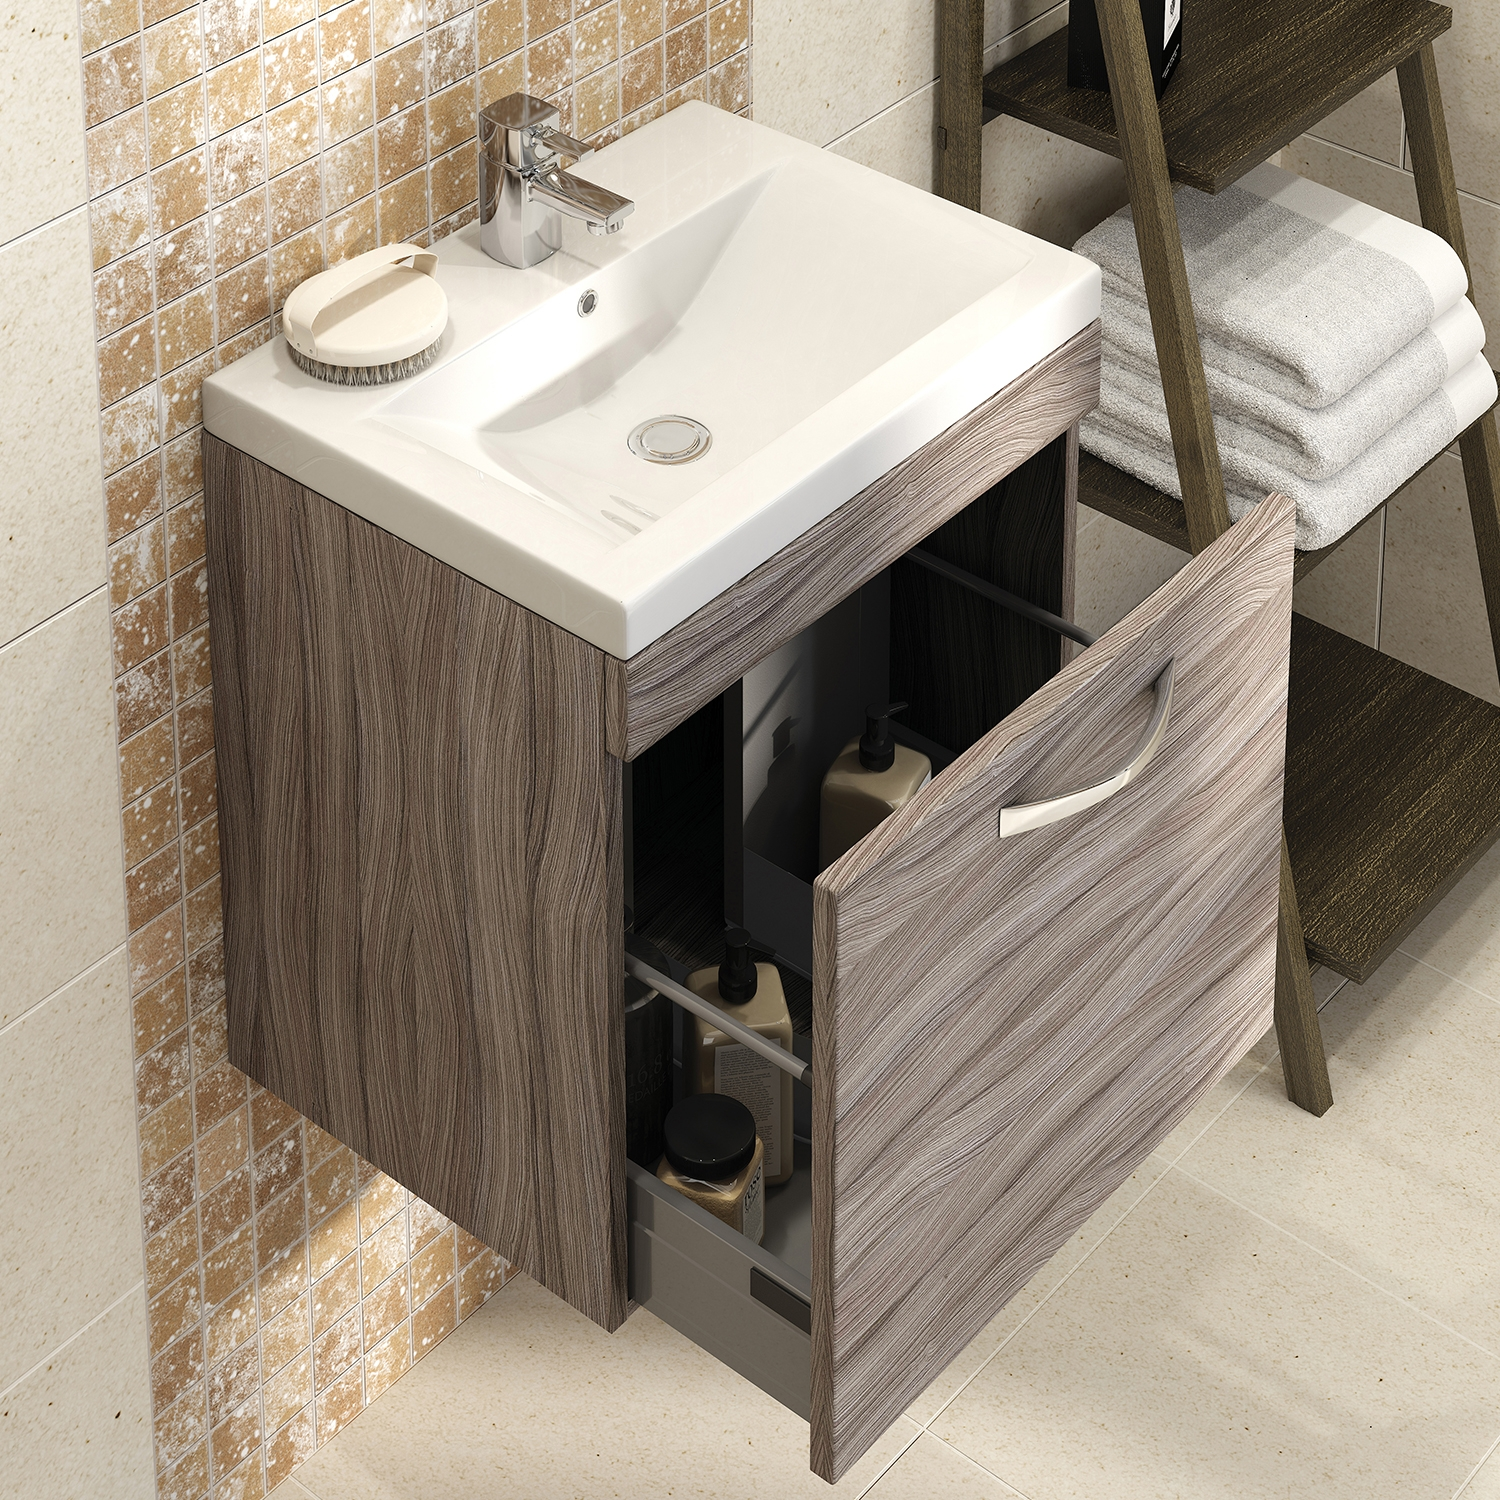 Premier Shipton Wall Hung 1-Drawer Vanity Unit with Basin 800mm Wide - Driftwood 1 Tap Hole-0